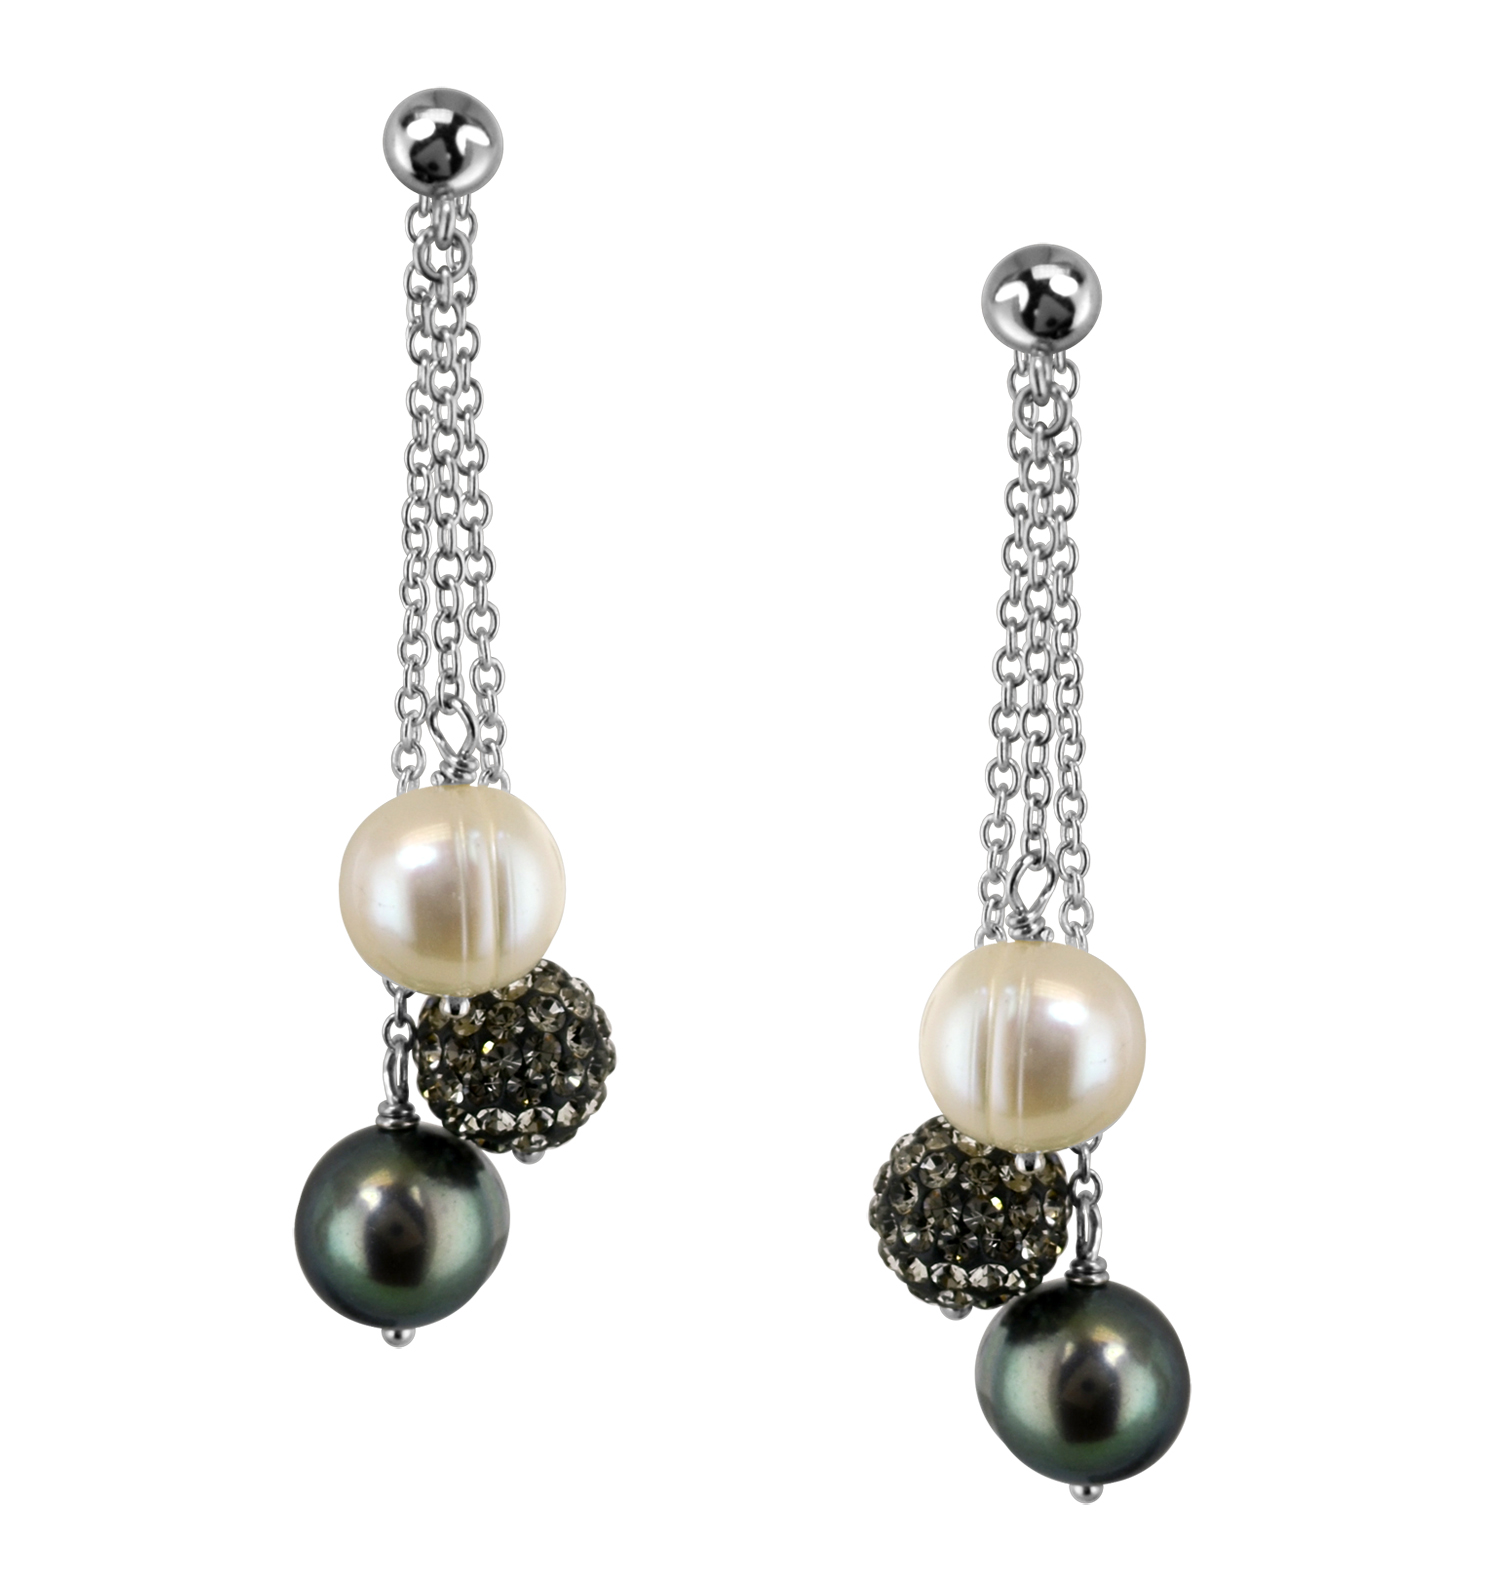 ffc7663f8 Sterling Silver 8-9mm Round Ringed Black Fresh Water Cultured Pearl and Pave  Crystal Bead Back Drop Earring - LE5672BWG